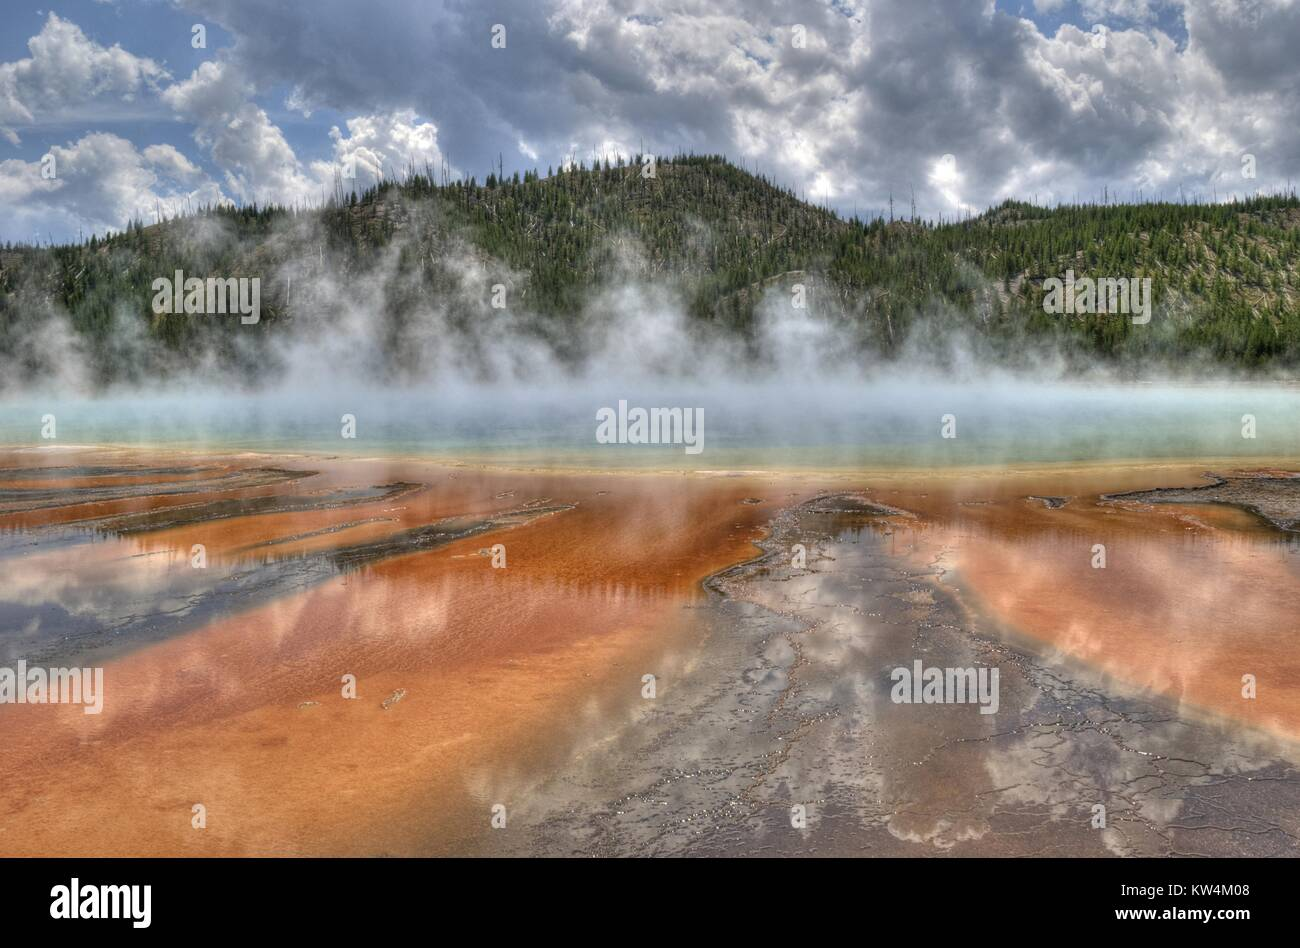 Grand Prismatic Spring and the thermophiles living within it, Yellowstone National Park, Wyoming, August, 2013. - Stock Image